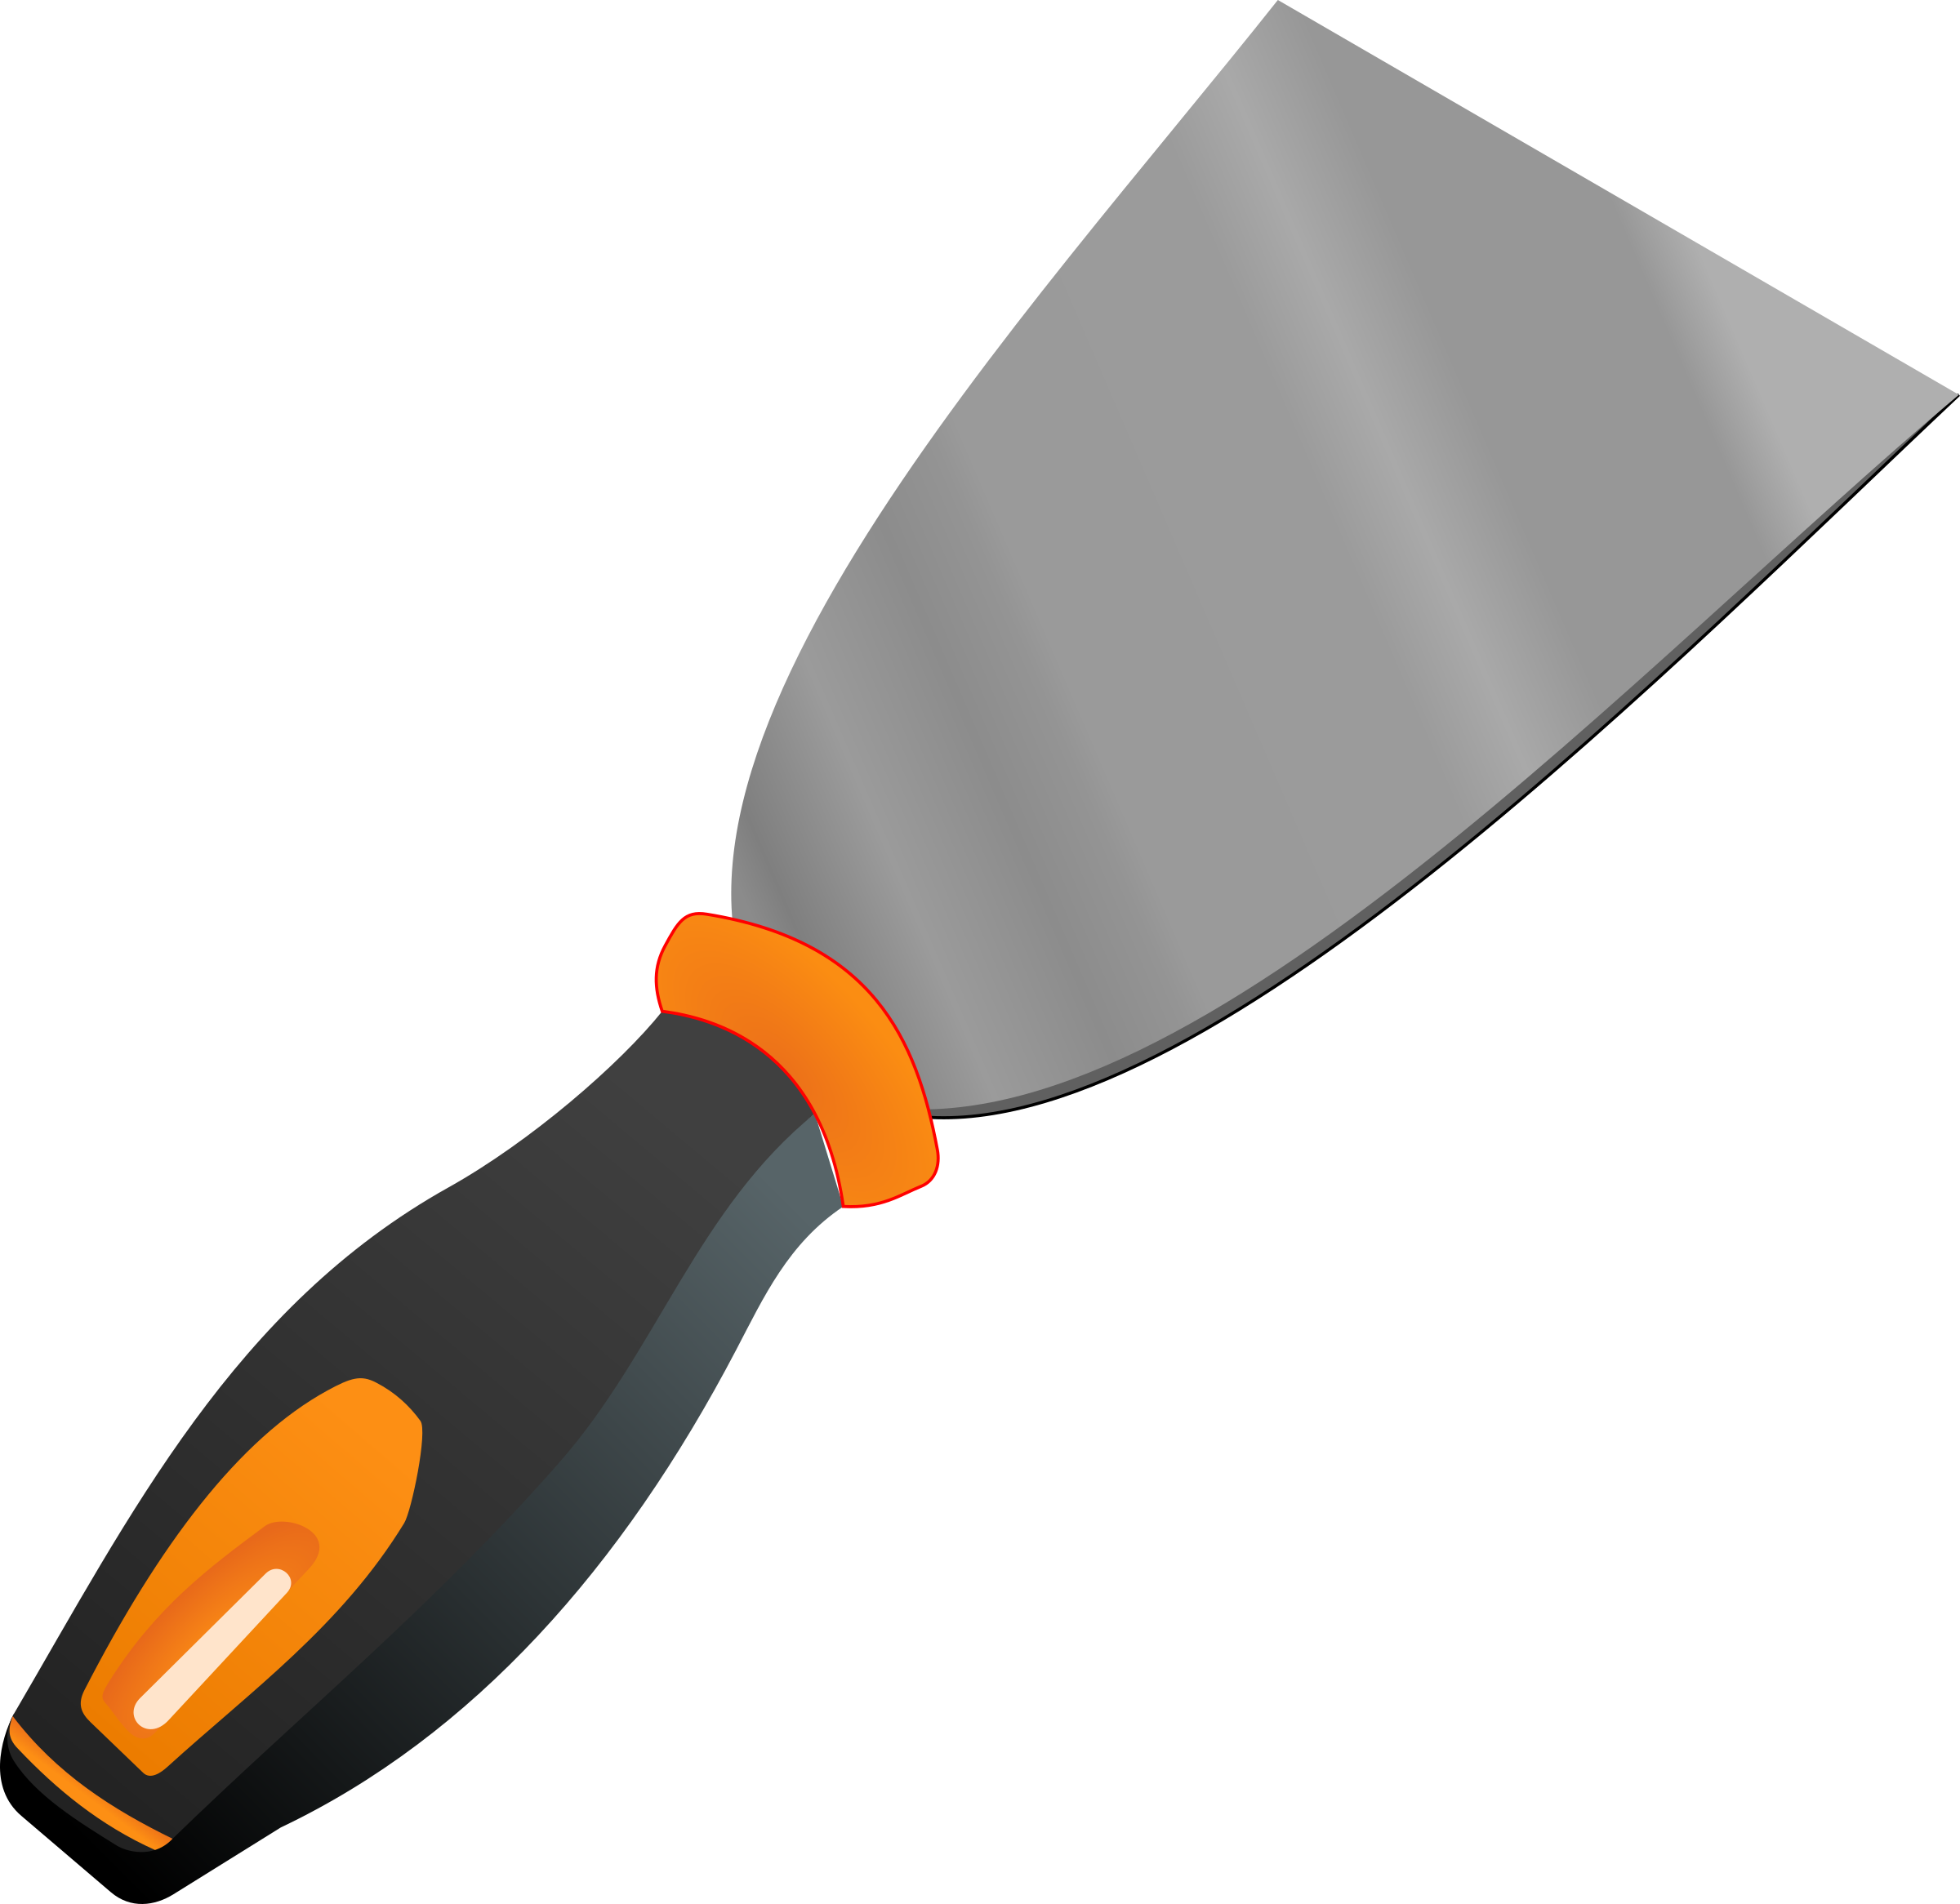 Clipart big image png. Spatula svg png freeuse stock